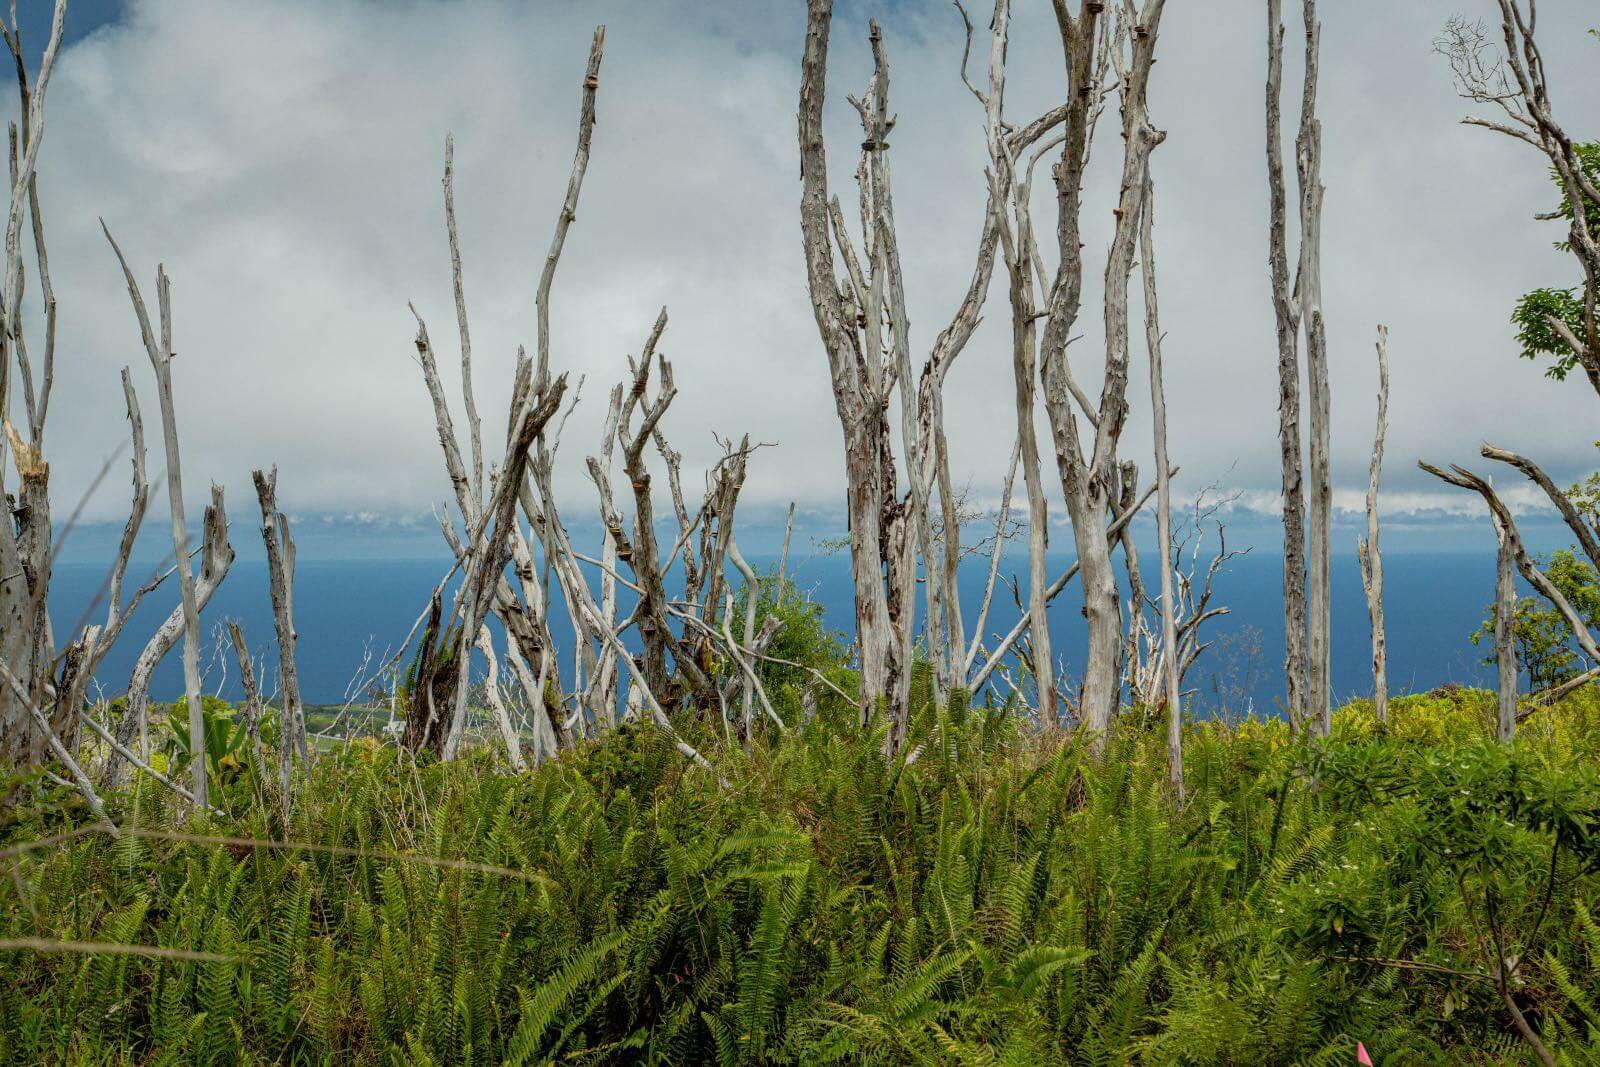 Bare trees with an ocean in the background